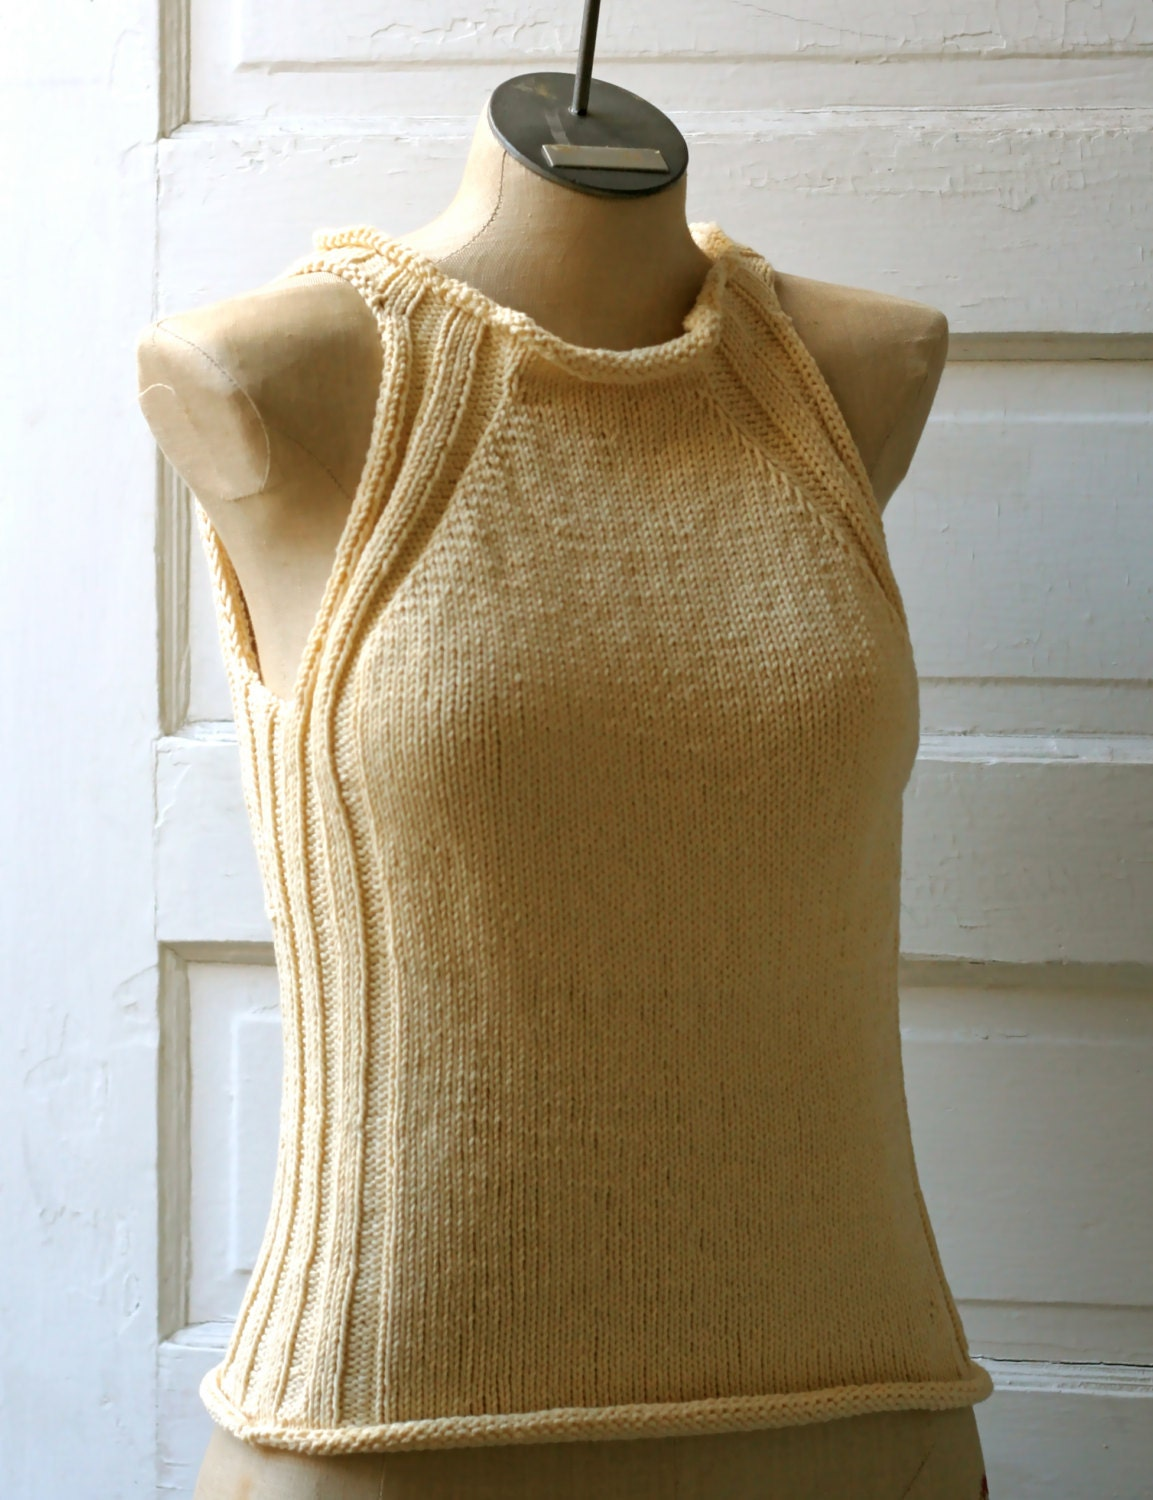 Made to Order: Cream Hand Knitted Cotton Fit and Flatter Tank Top with Curvy Ribbing Detail - AmyLaRoux